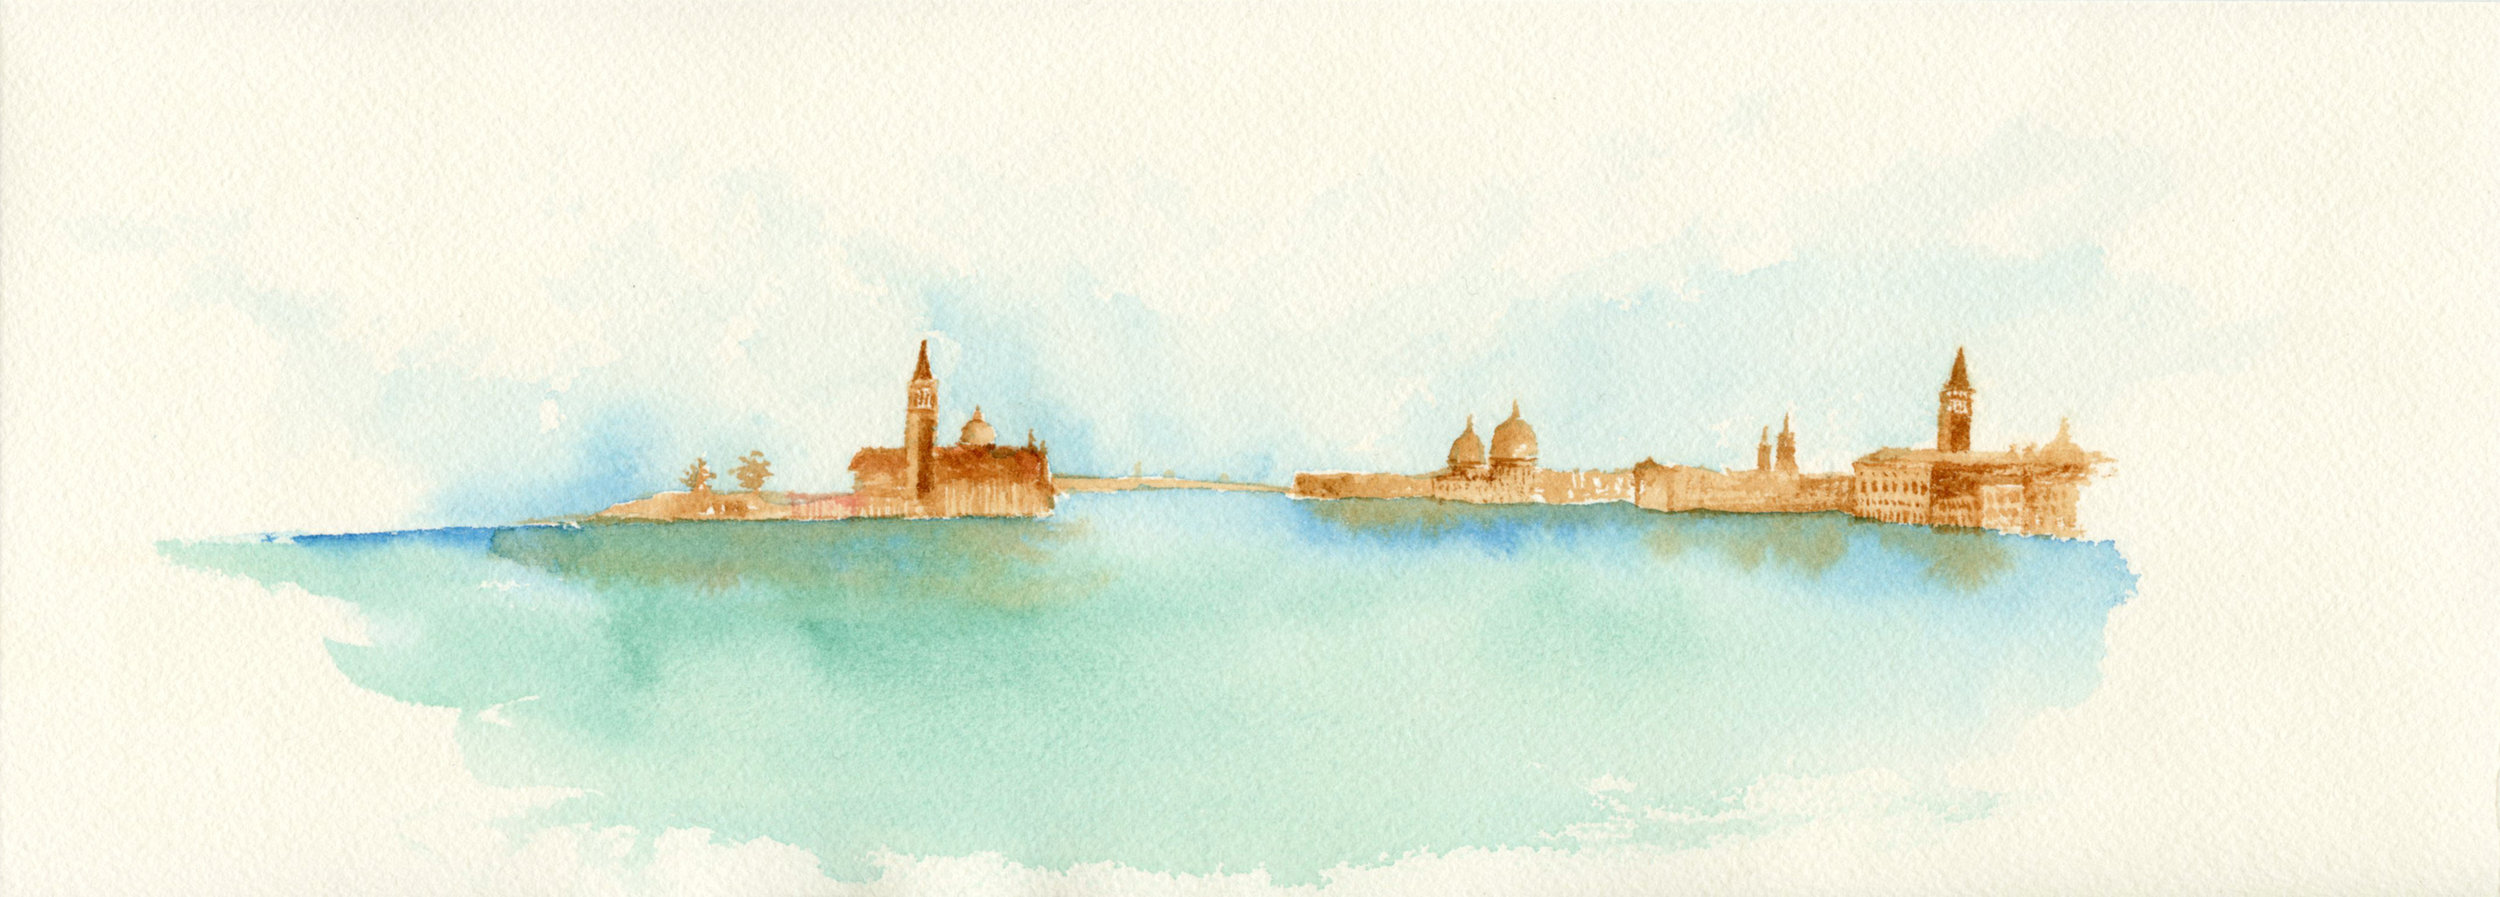 Copy of Venice from a Distance II